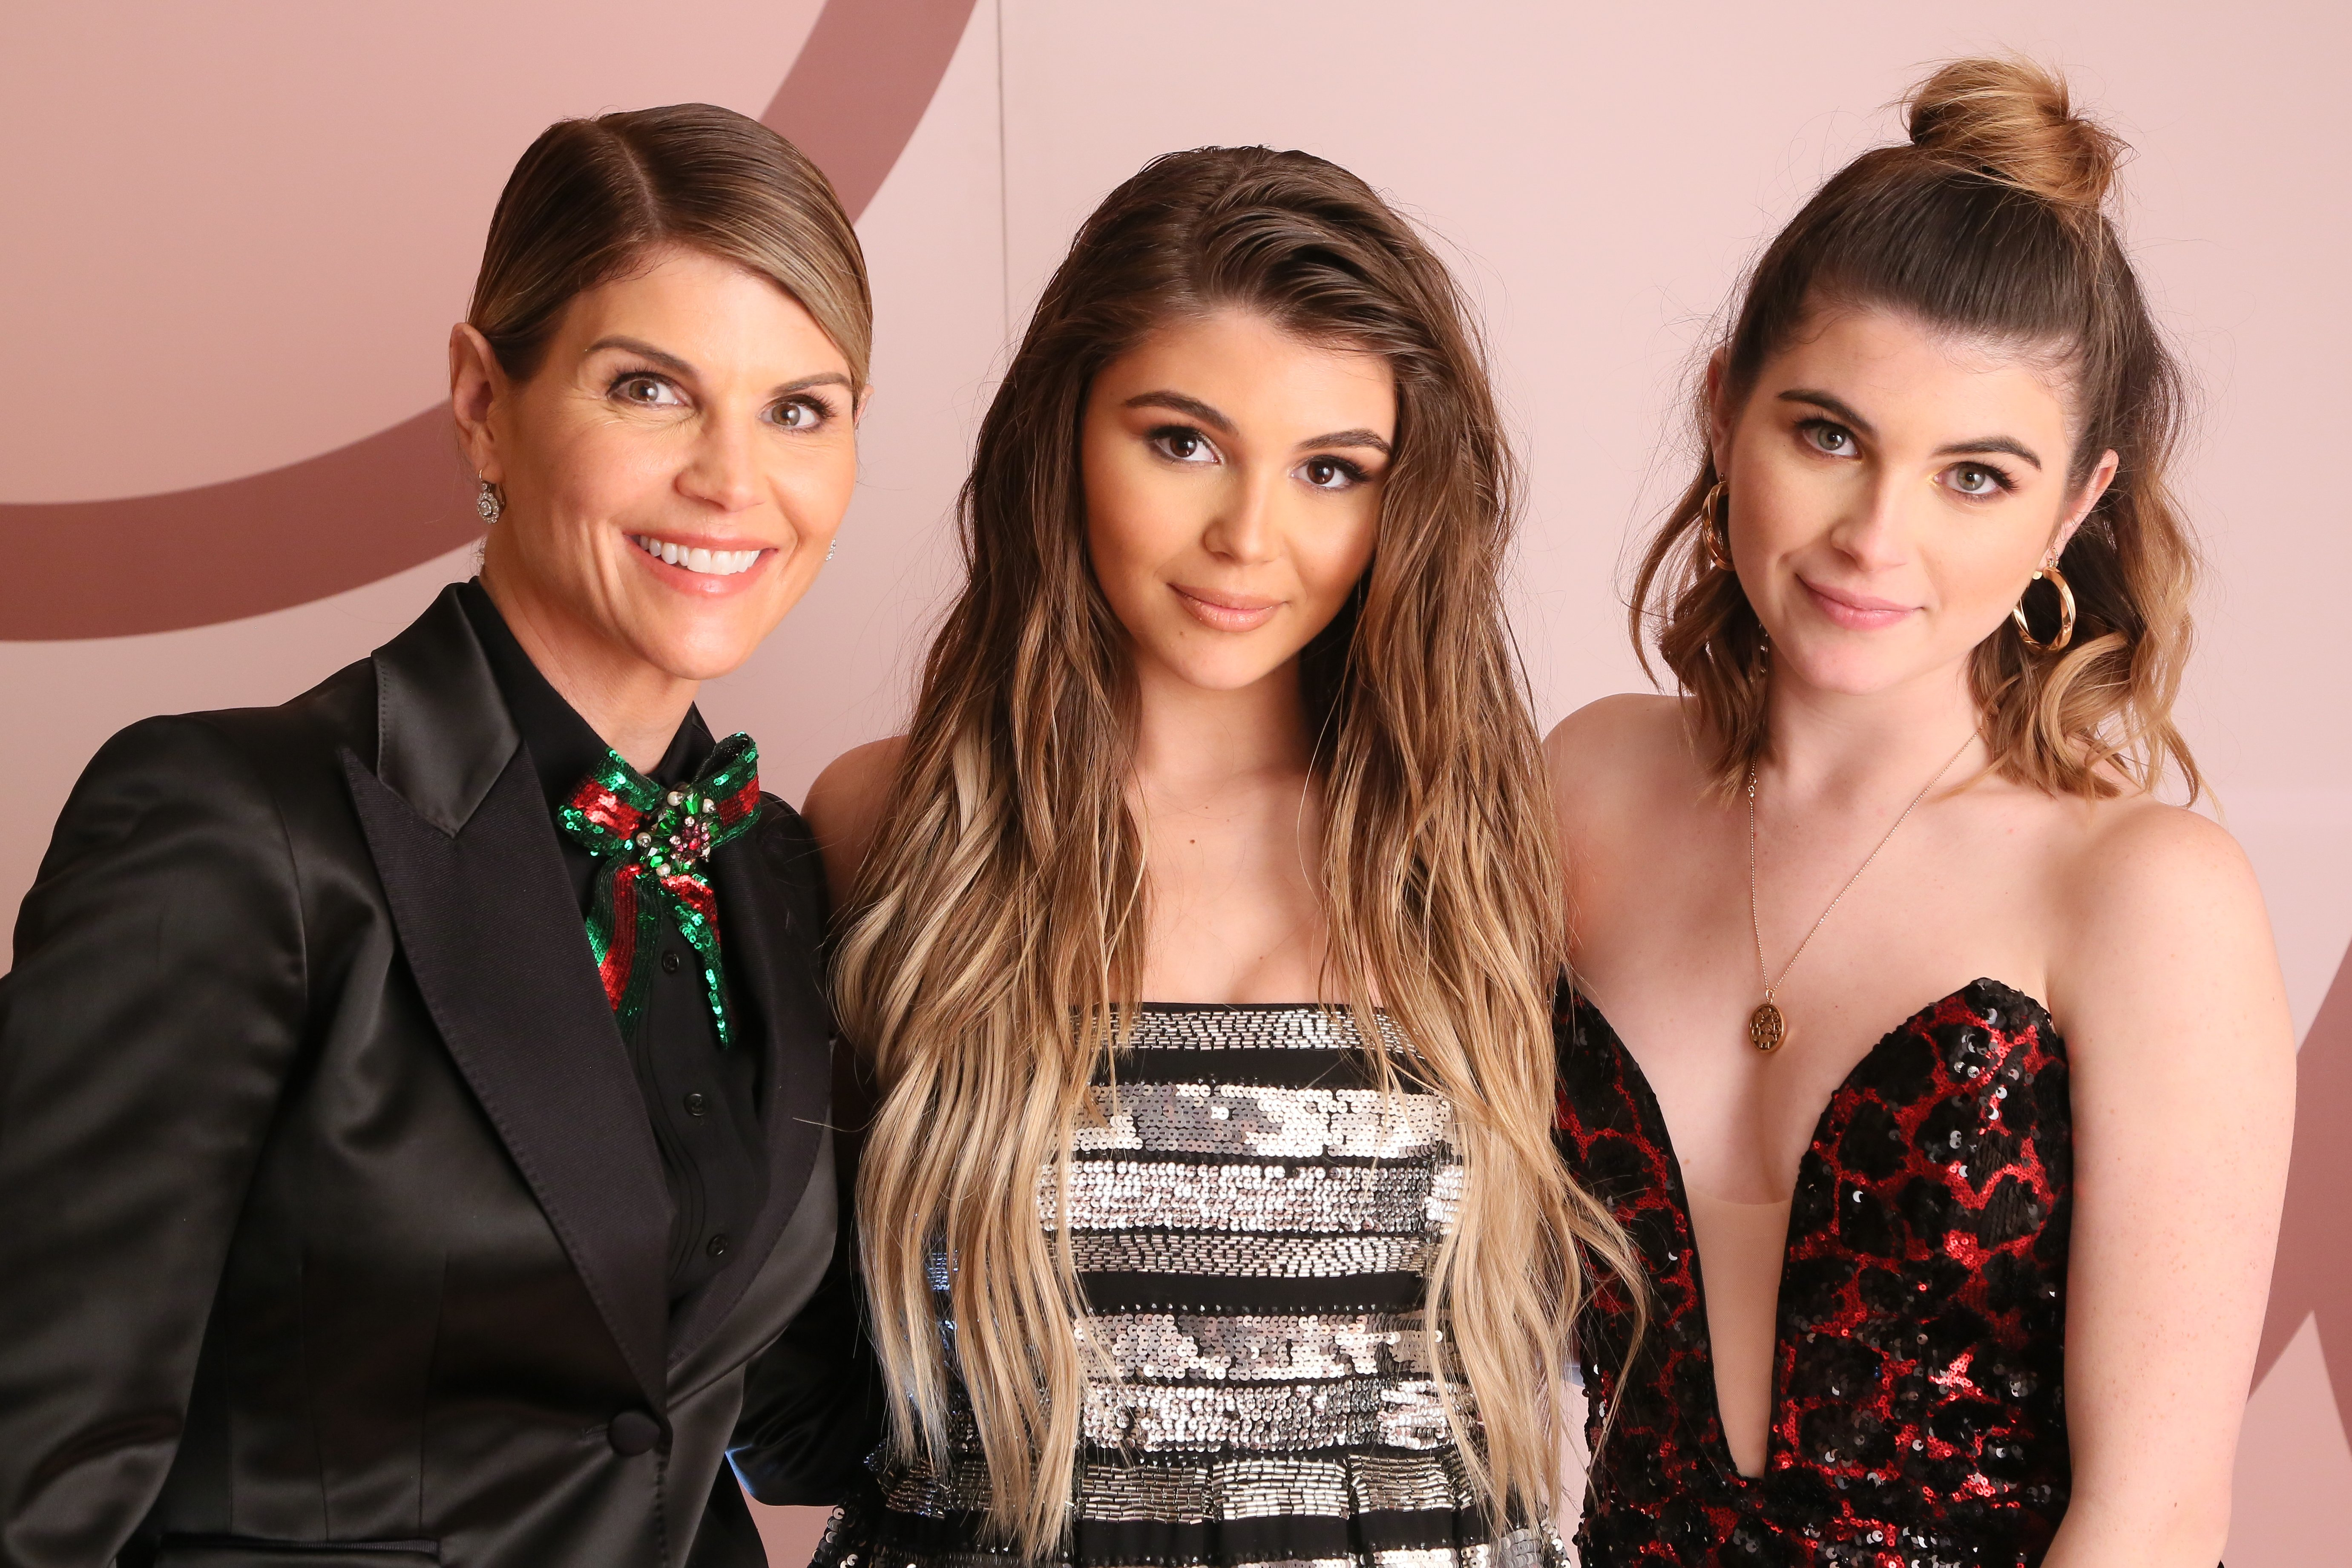 Lori Loughlin and daughters Olivia Jade and Isabella Rose Giannulli at the Olivia Jade X Sephora Collection Palette Collaboration Launching Online at Sephora.com on December 14, 2018 in West Hollywood, California.   Source: Getty